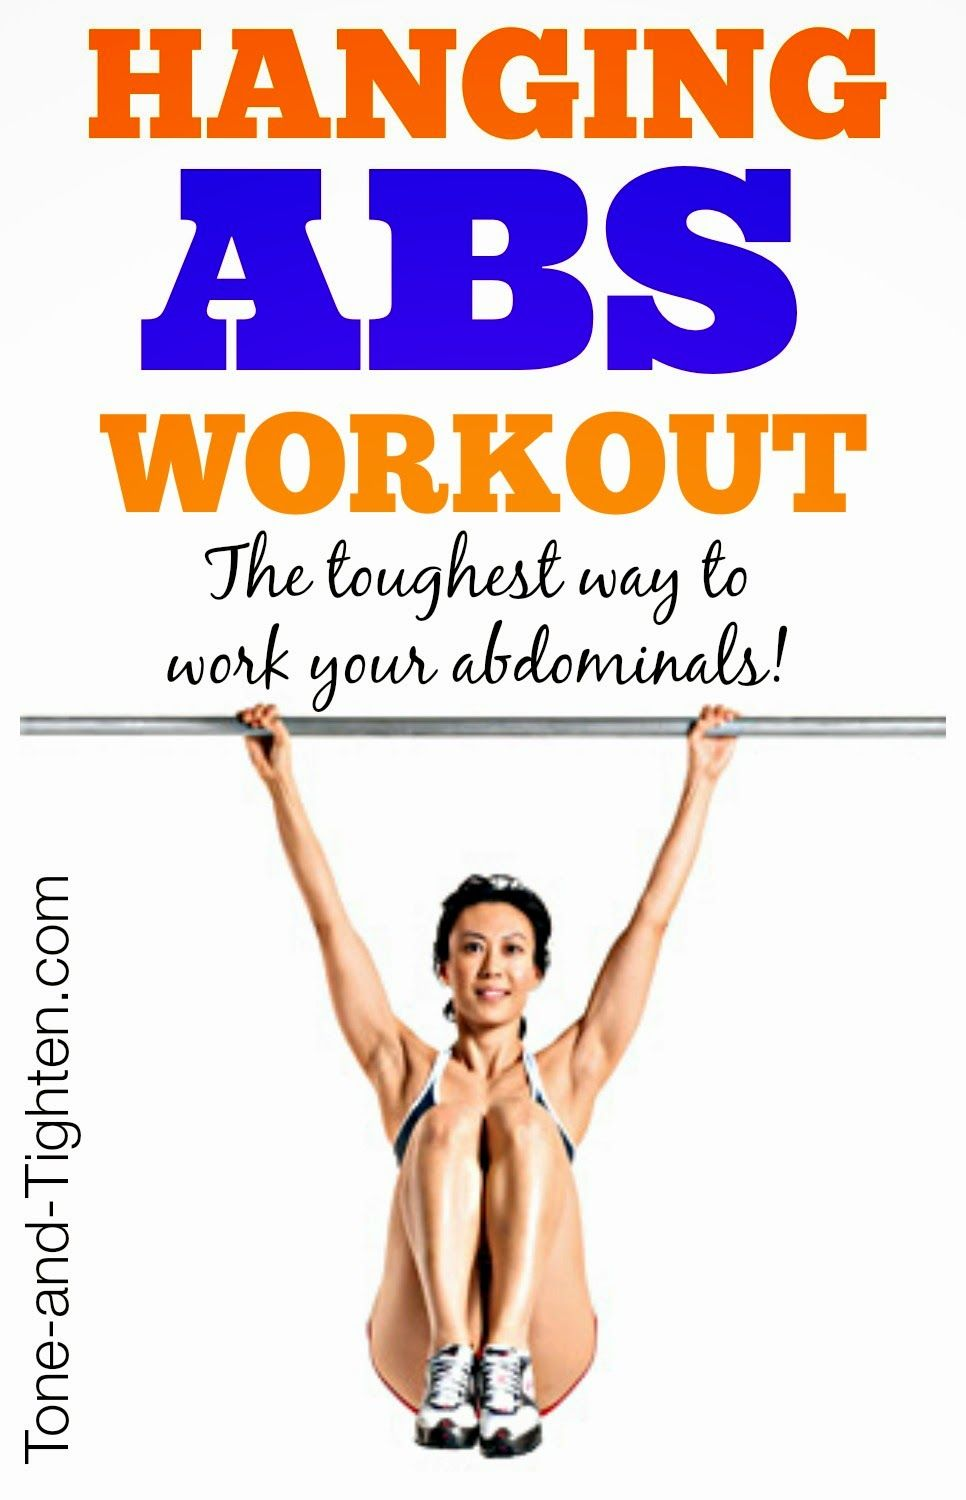 Hanging Ab Abs Workout Exercises